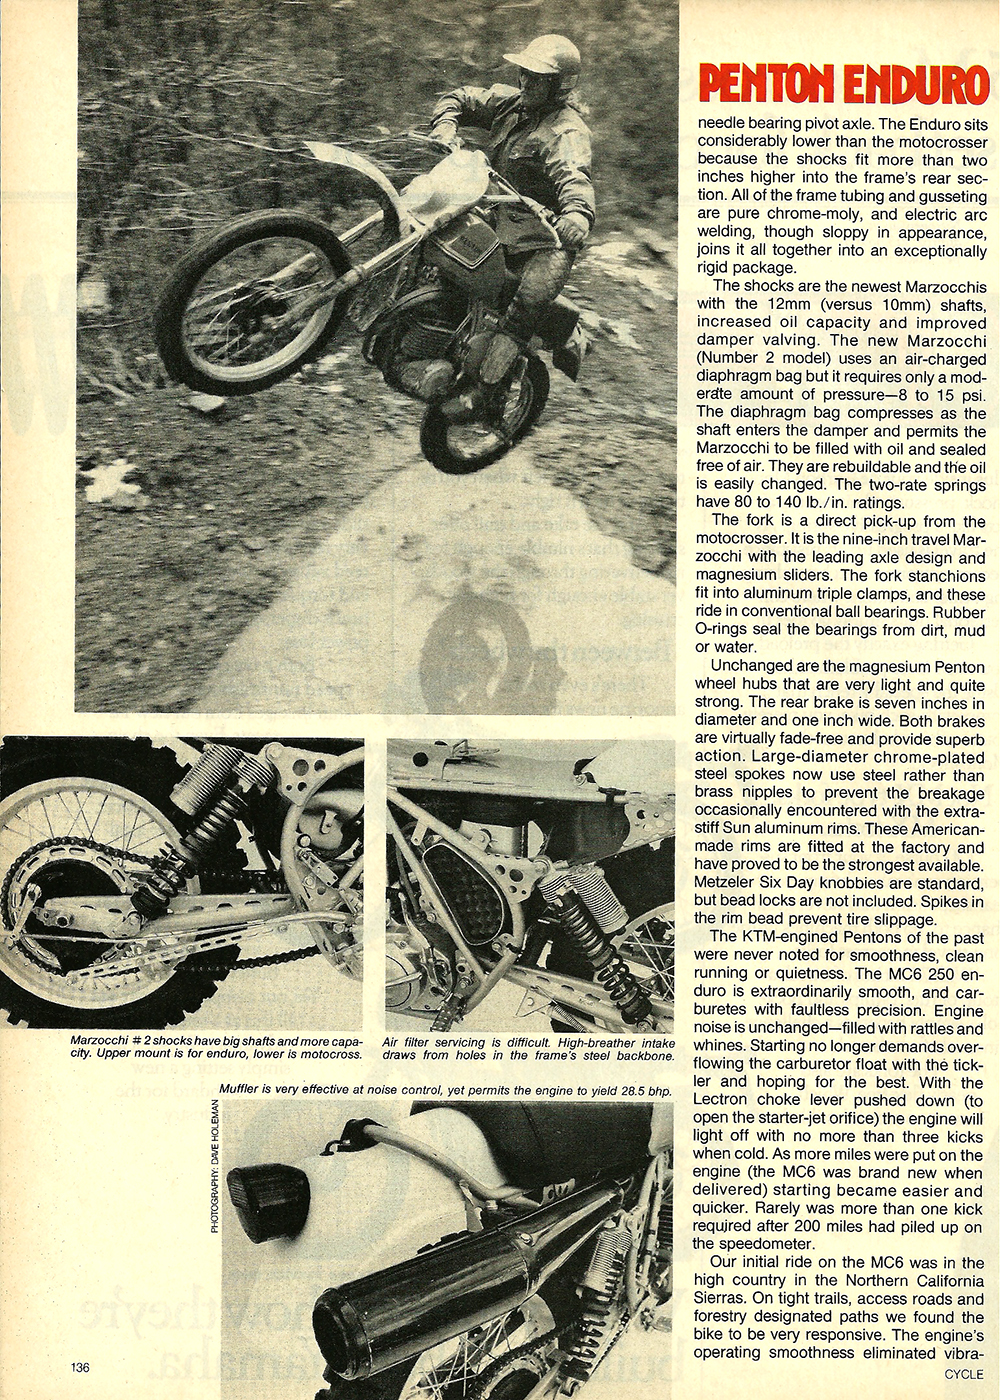 1977 Penton MC6 250 Enduro road test 4.jpg